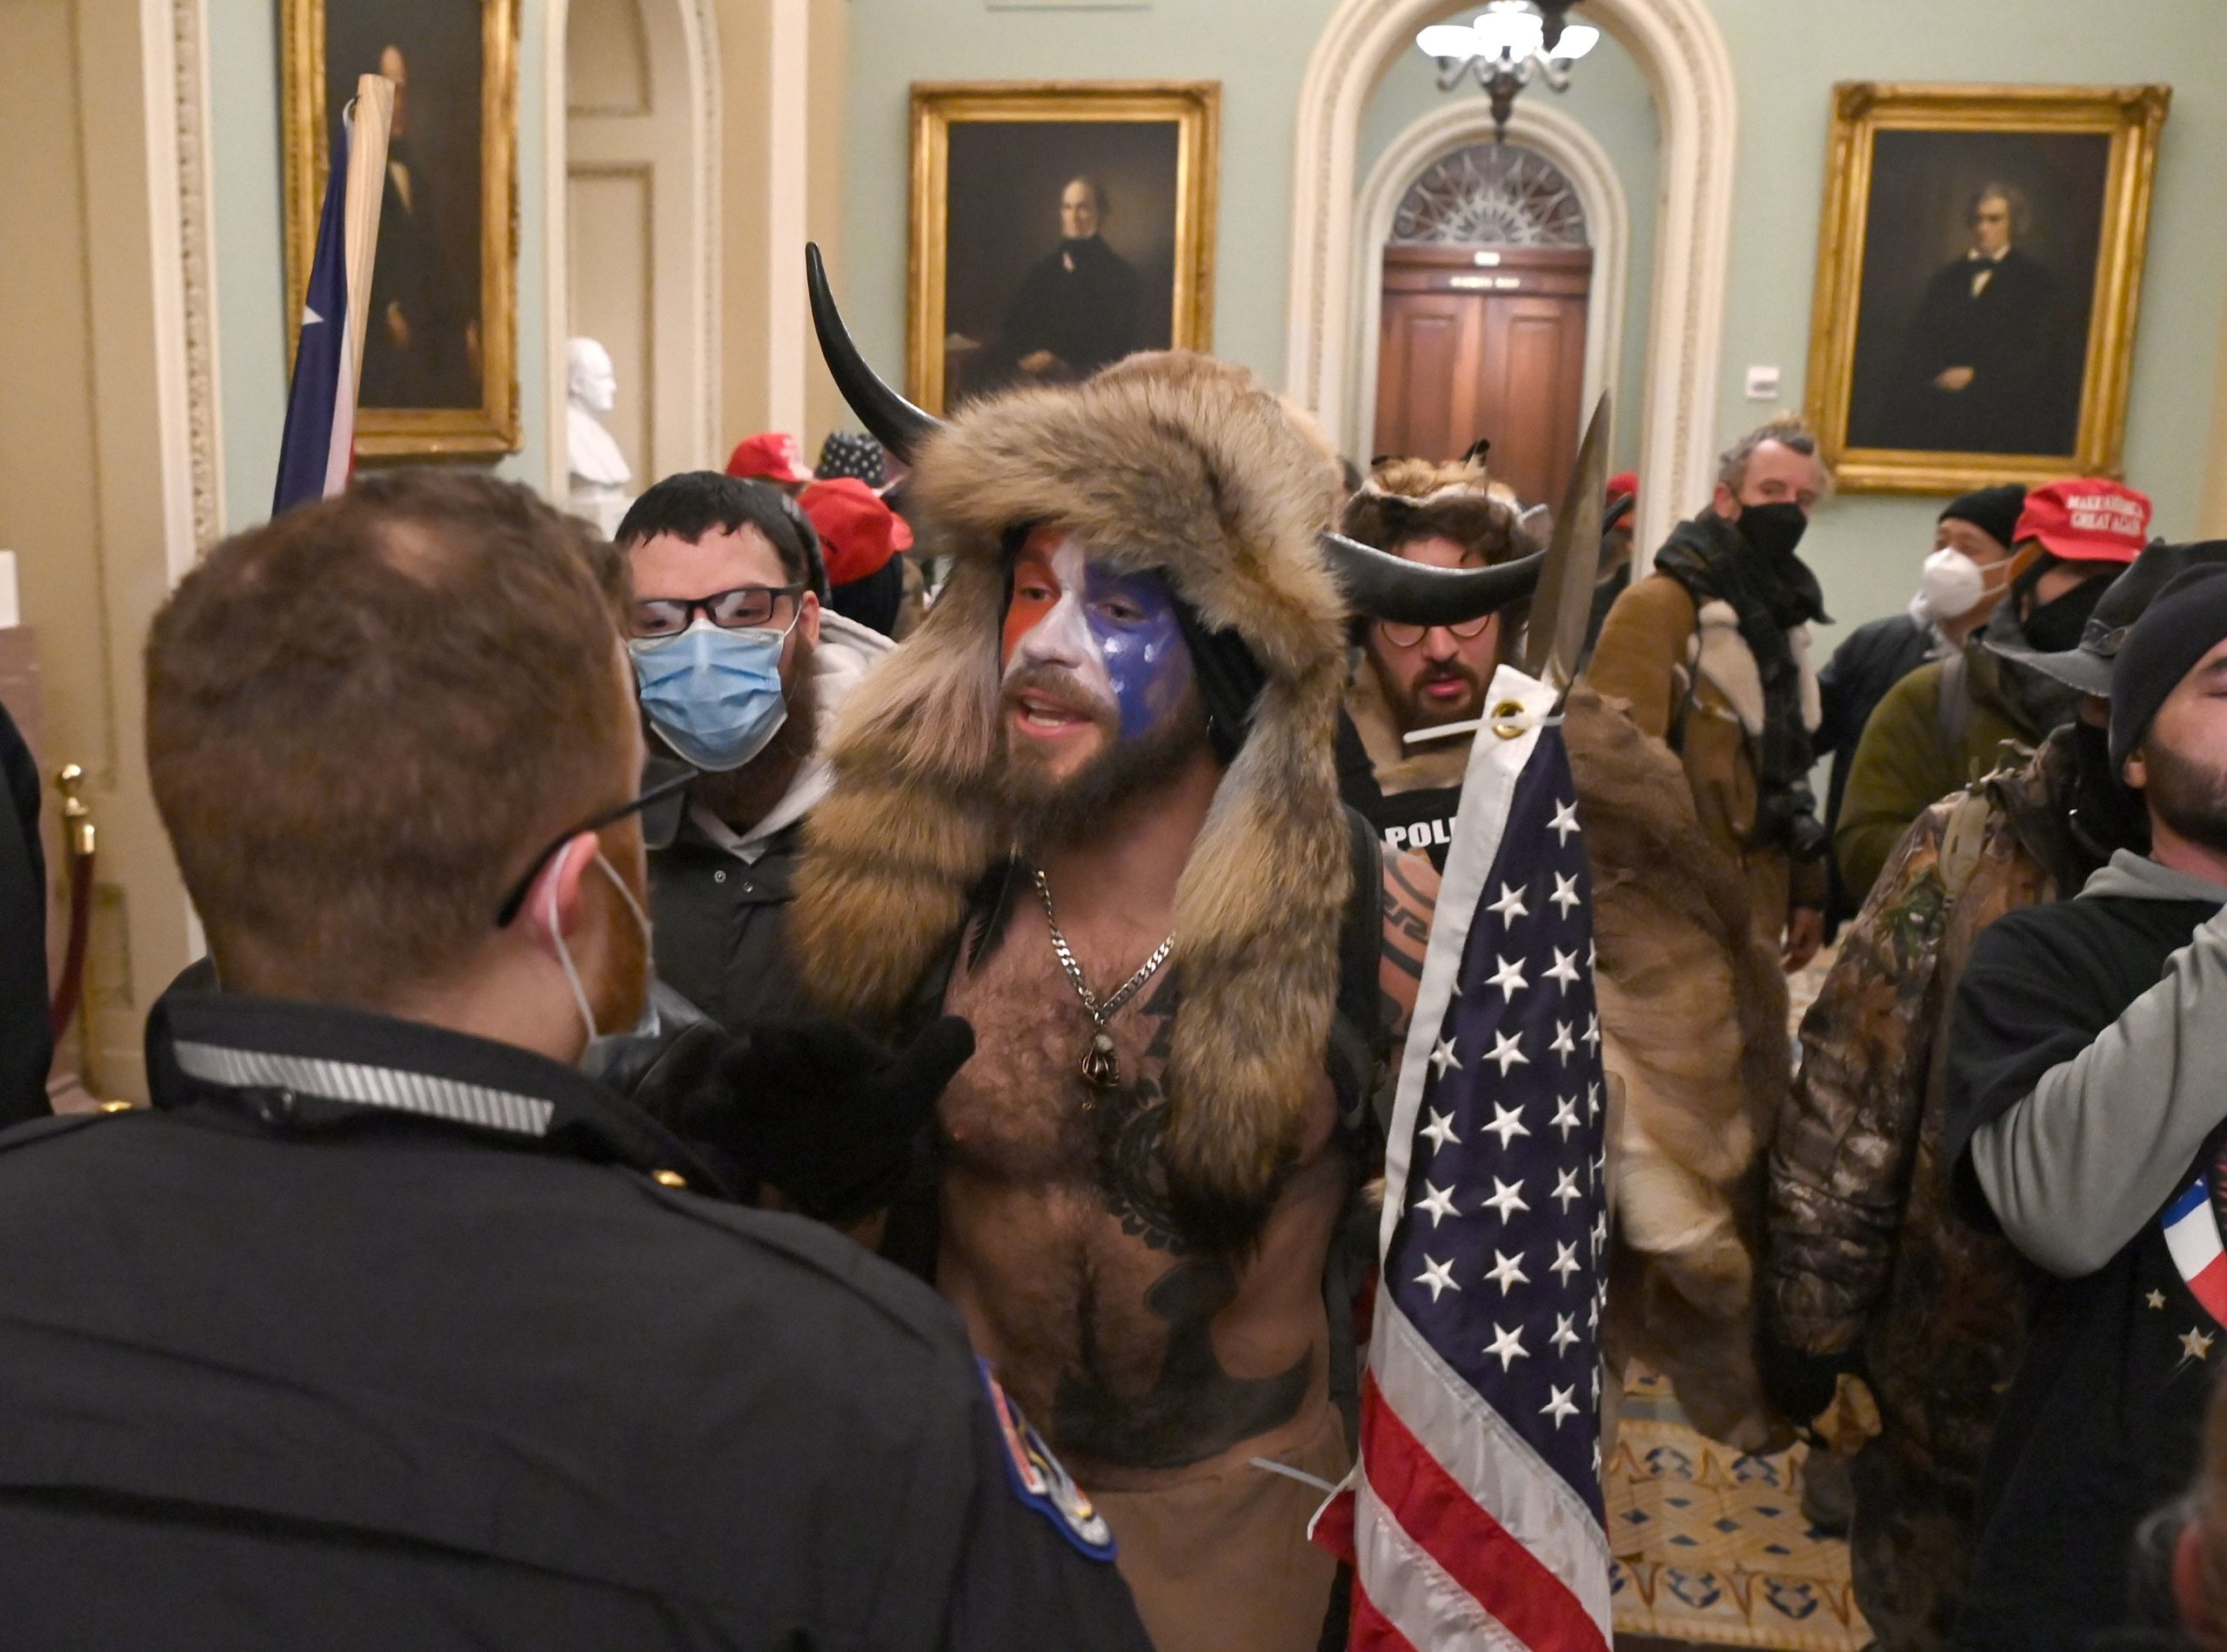 Capitol rioters confront a police officer on January 6, 2021. (Photo by SAUL LOEB/AFP via Getty Images)